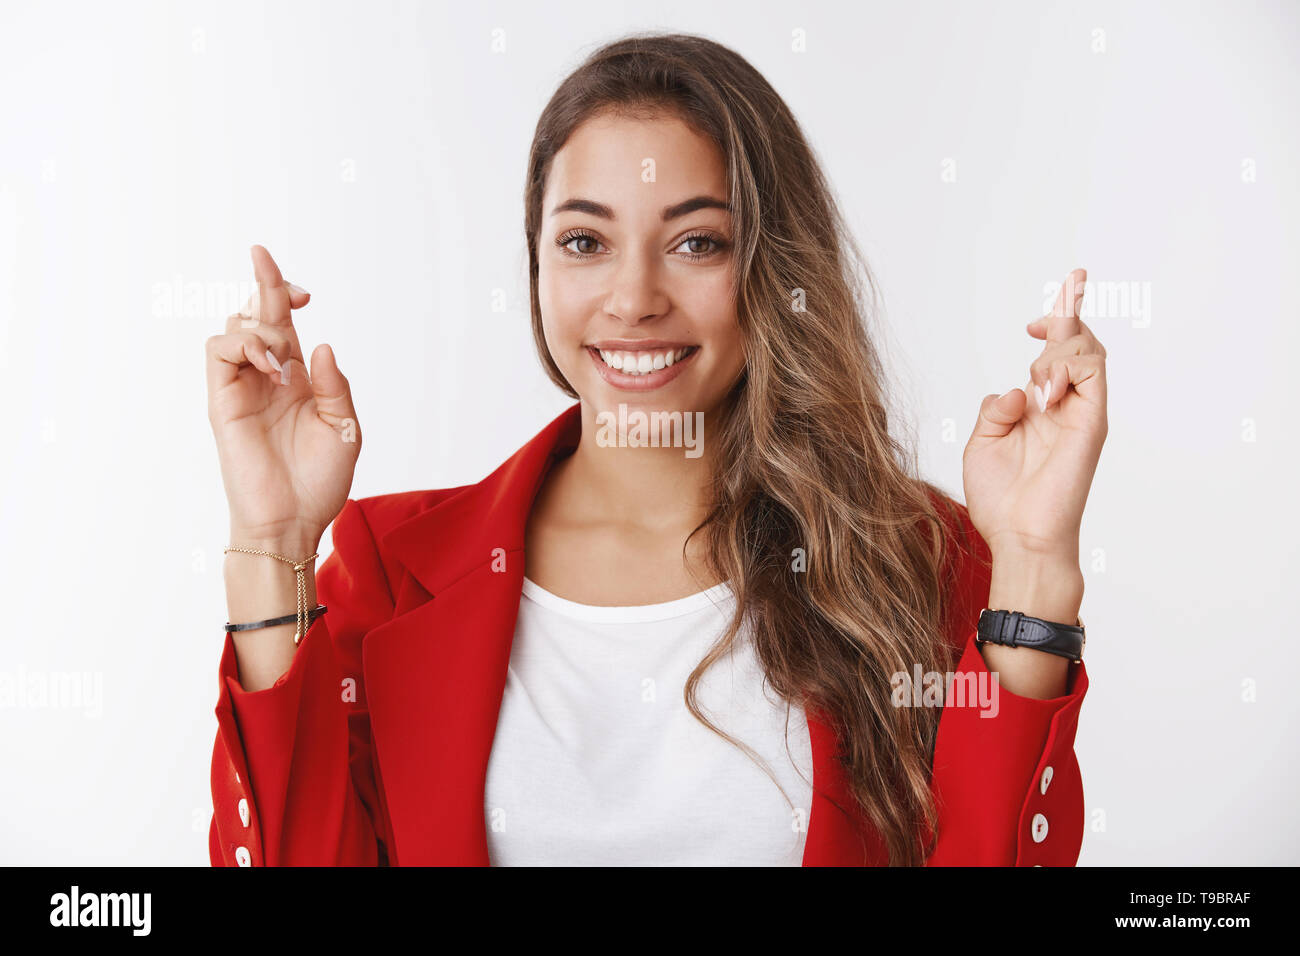 Optimistic happy woman making wish smiling aimed success, cross fingers good luck grinning looking camera hopeful excited, waiting positive results - Stock Image